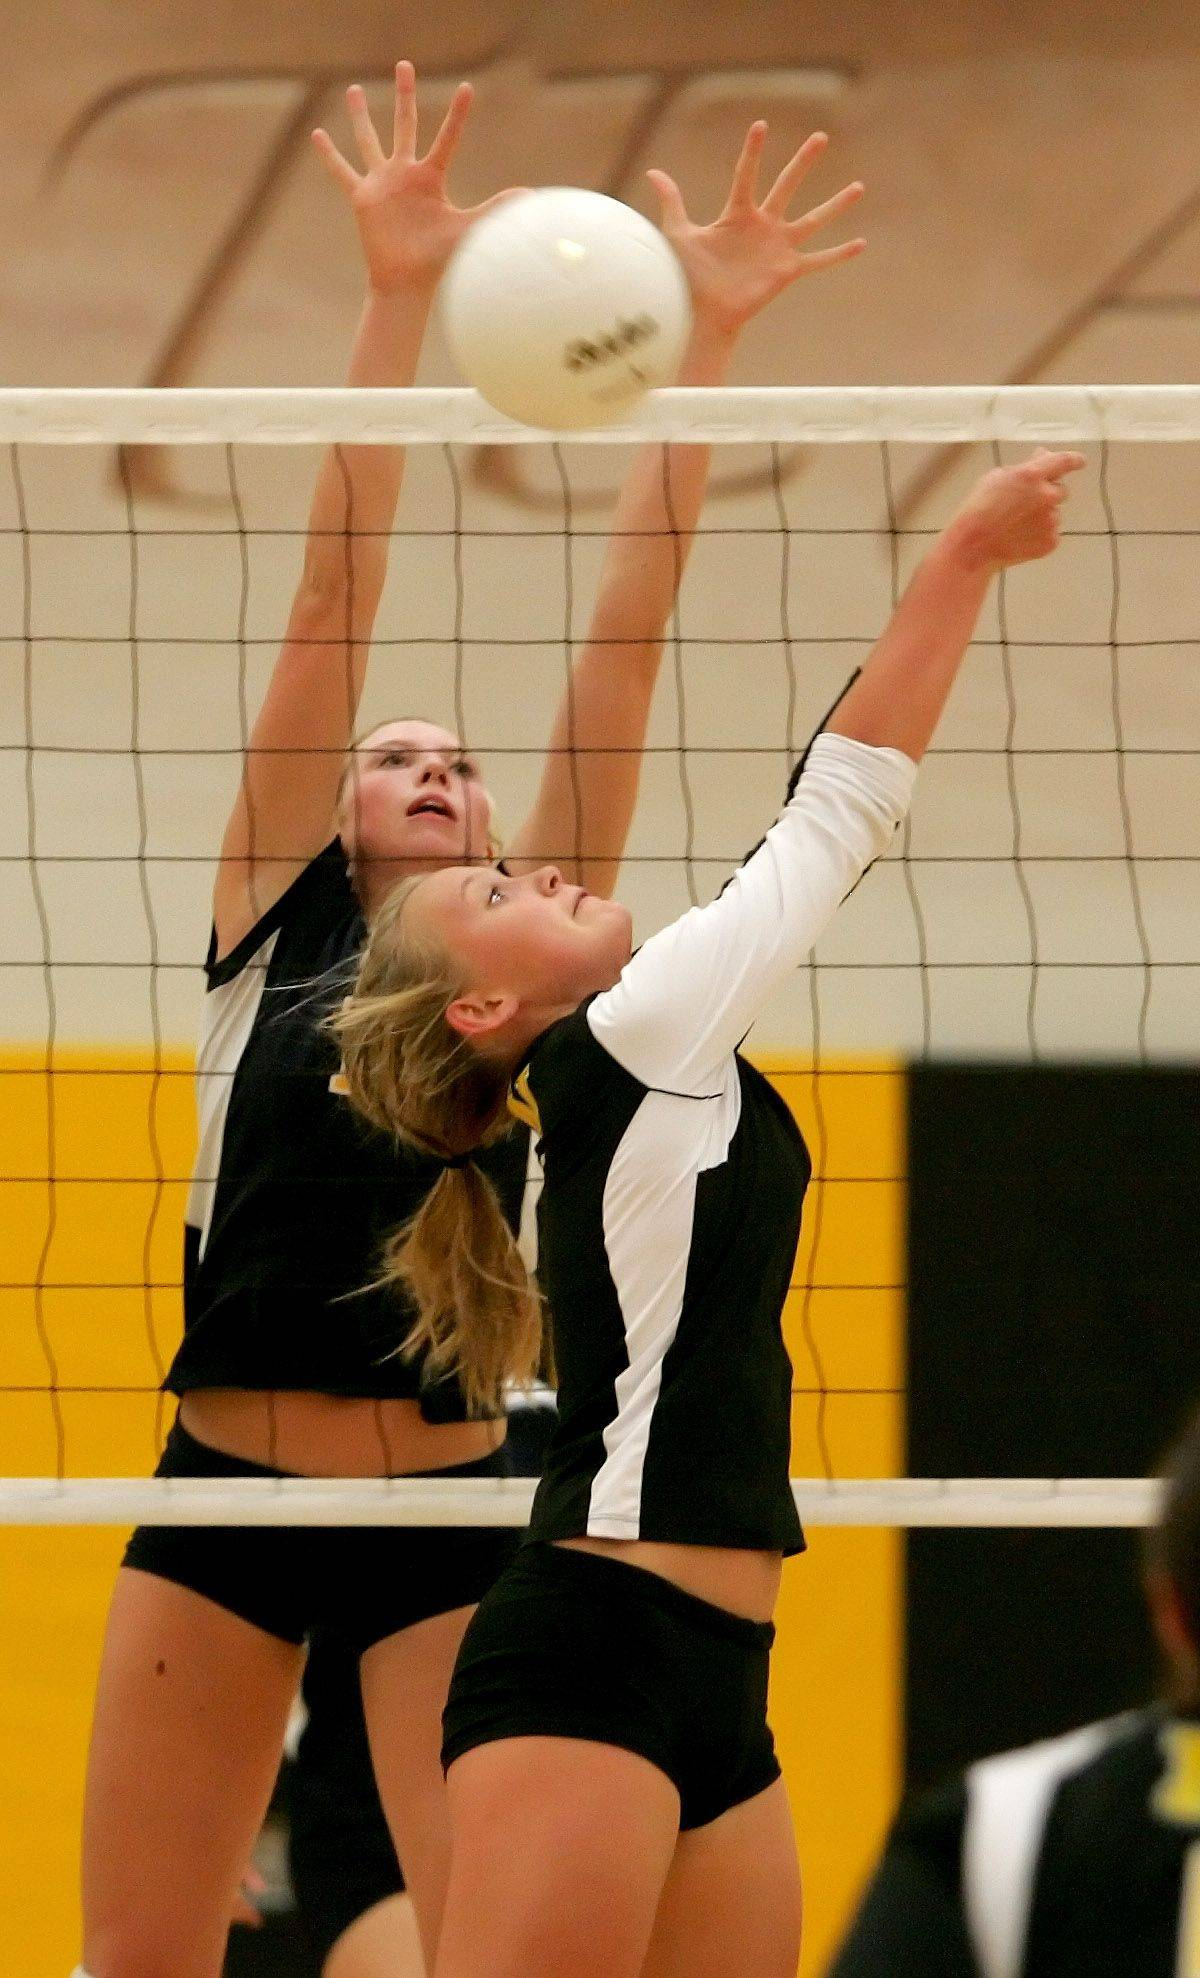 Callie Huebener of Neuqua Valley goes up to block a shot by Ellie Petersen of Metea Valley during girls volleyball Tuesday in Aurora.